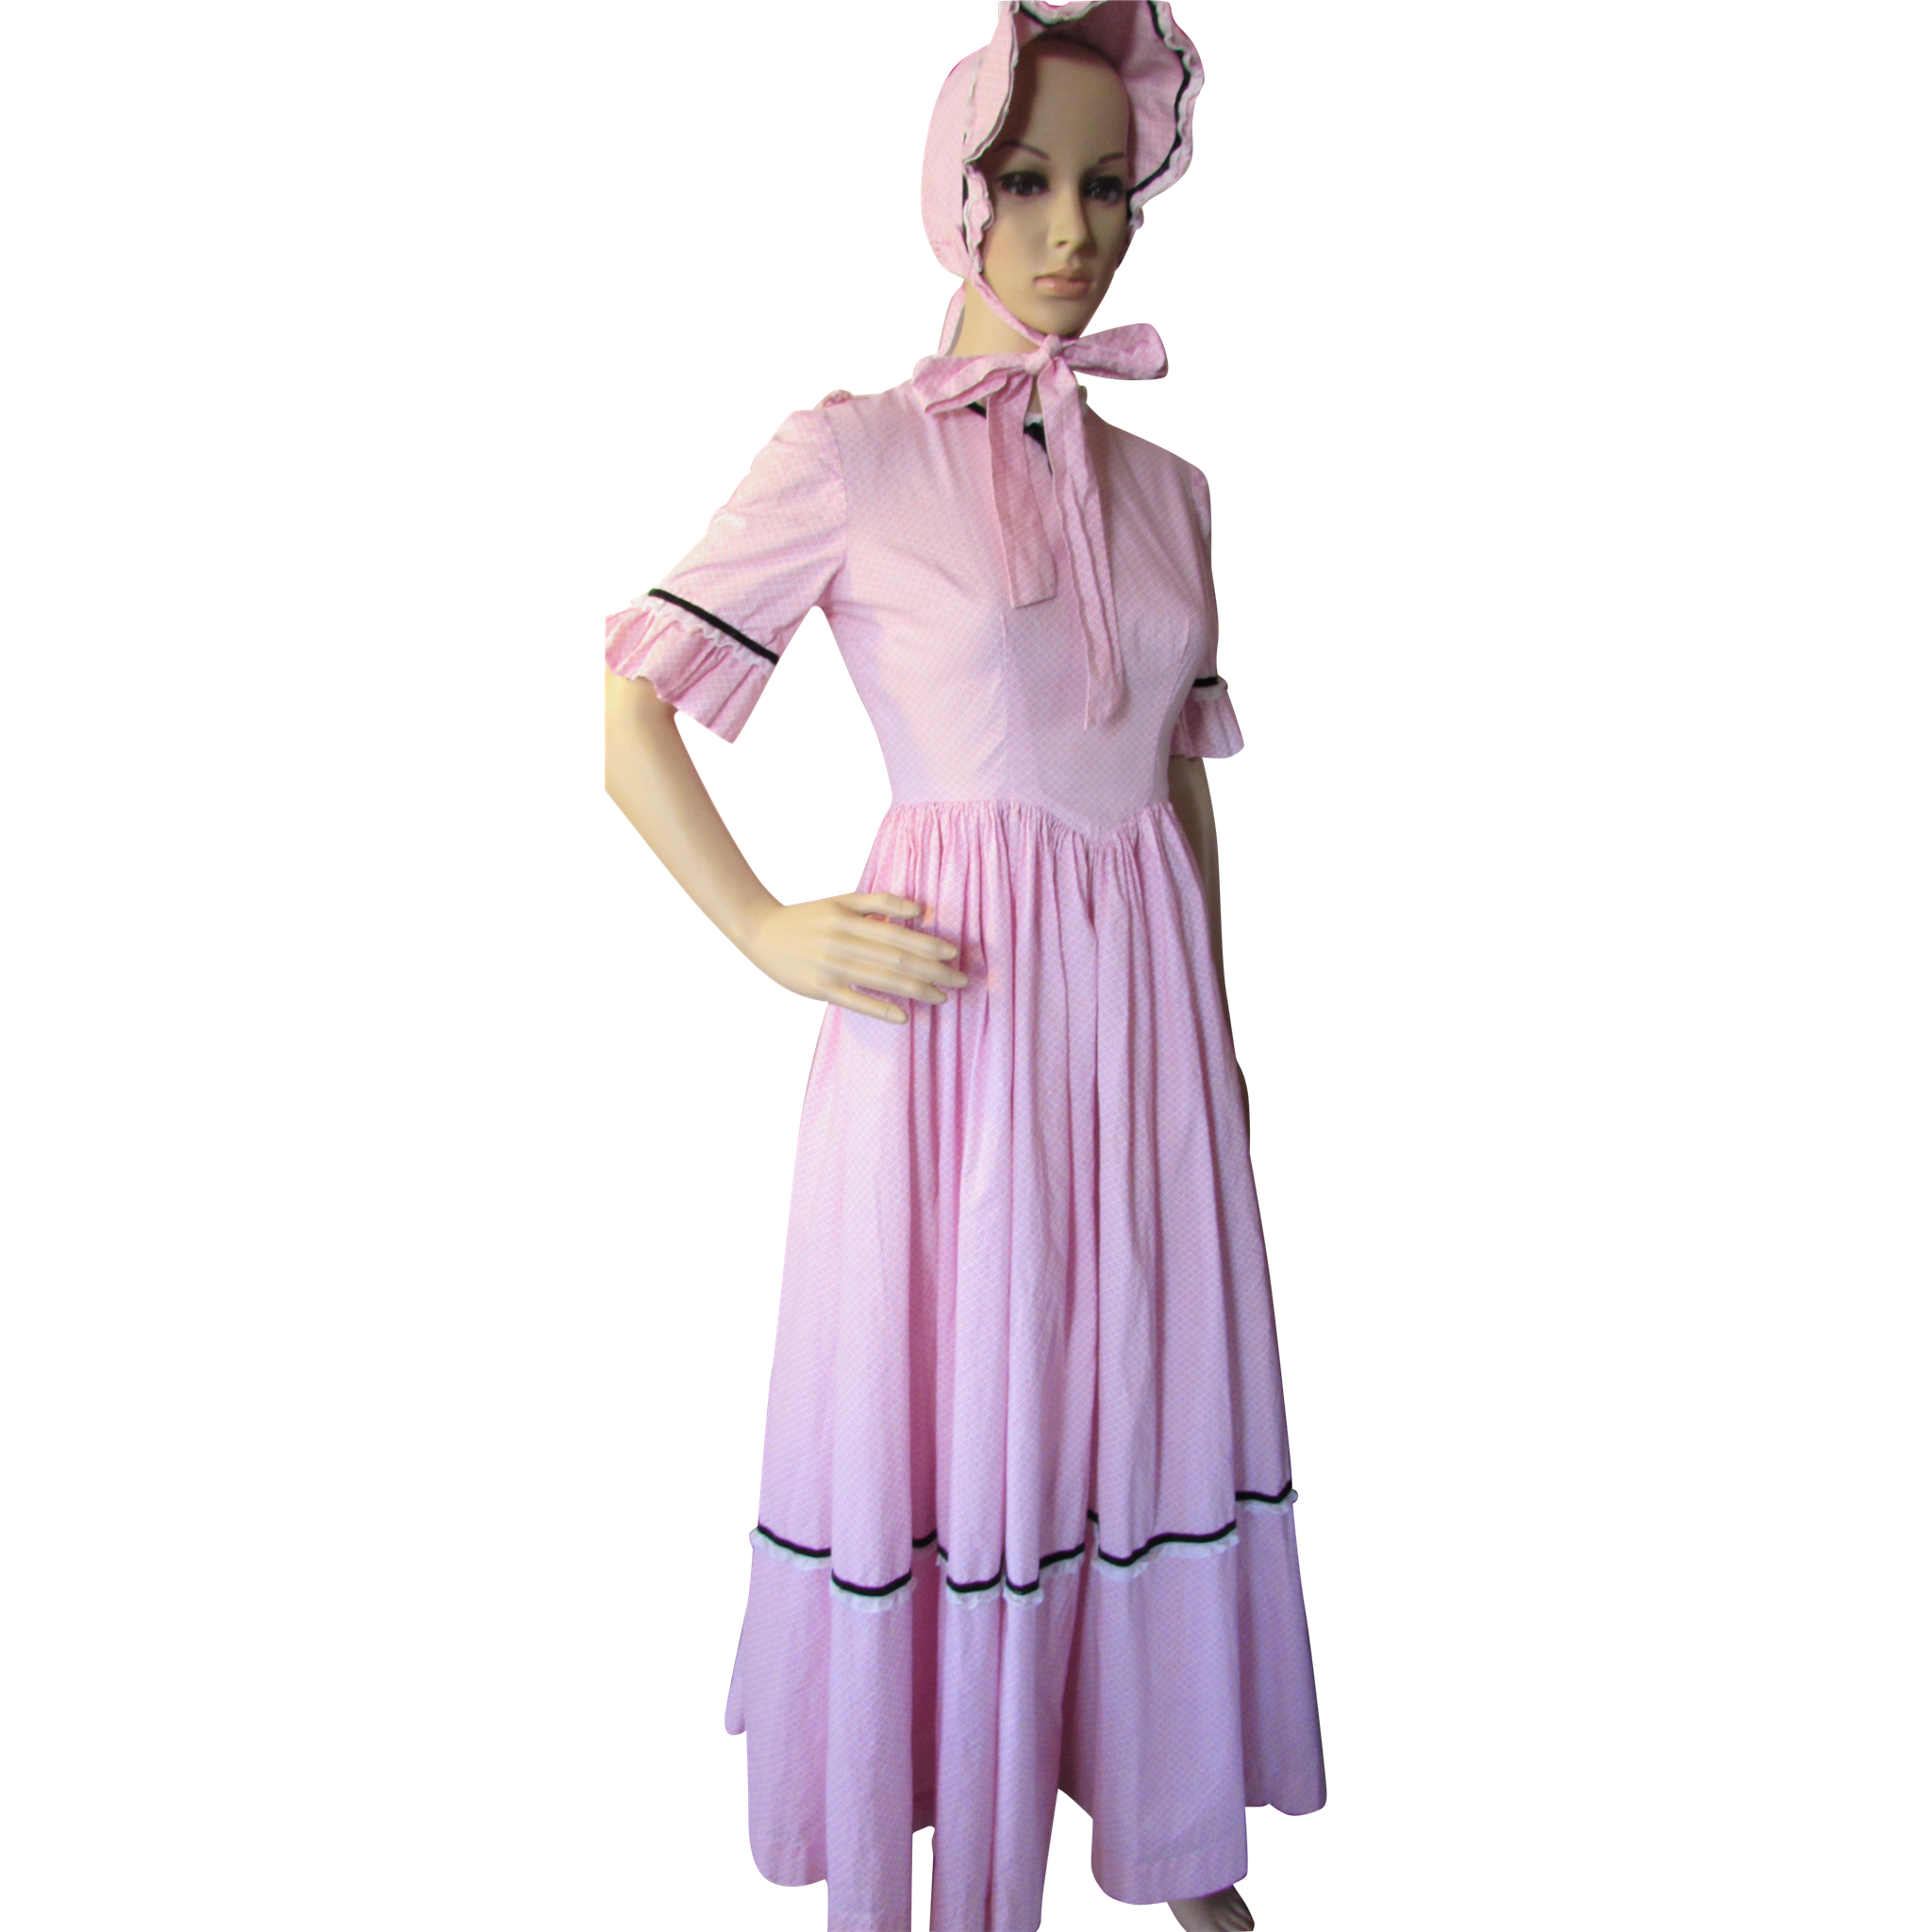 Little House on the Prairie Style Dress and Sunbonnet in Pink Gingham Reproduction Costume Hand Made